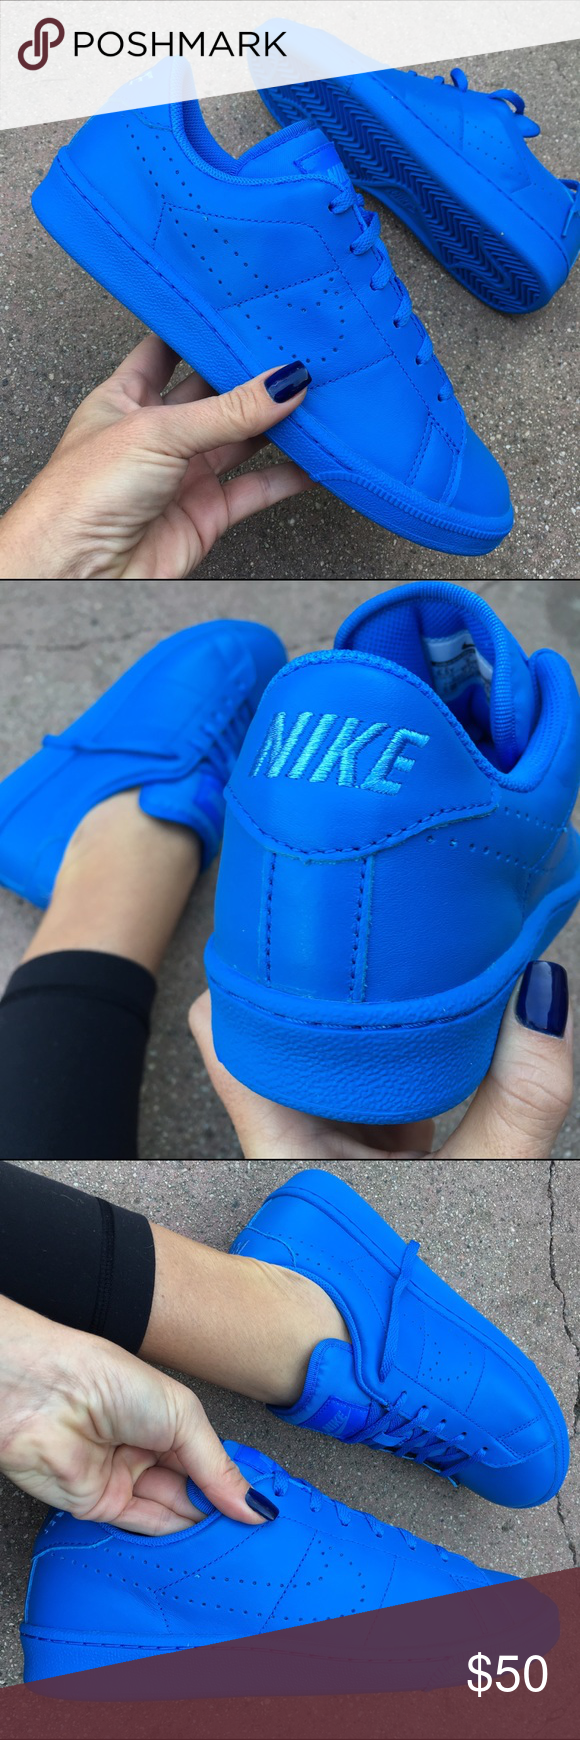 NWB 🎁 NIKE CLASSICS PREMIUM 💙 UNIVERSITY BLUE New never worn NIKE CLASSICS WITH ORIGINAL BOX! Perfect for gift giving 🎁 Size 4 youth approx = 5.5 women Size 4.5 youth approx = 6 women SOLD Size 5 youth approx = 6.5 women SOLD Size 5.5 youth approx = 7 women Size 6 youth approx = 7.5 women Size 6.5 youth approx = 8 women Size 7 youth approx = 8.5 women Please select your woman's size to purchase.  Ships same or next day, smoke free home.  Bundle to save.   PRICE IS FIRM. 100% authentic…